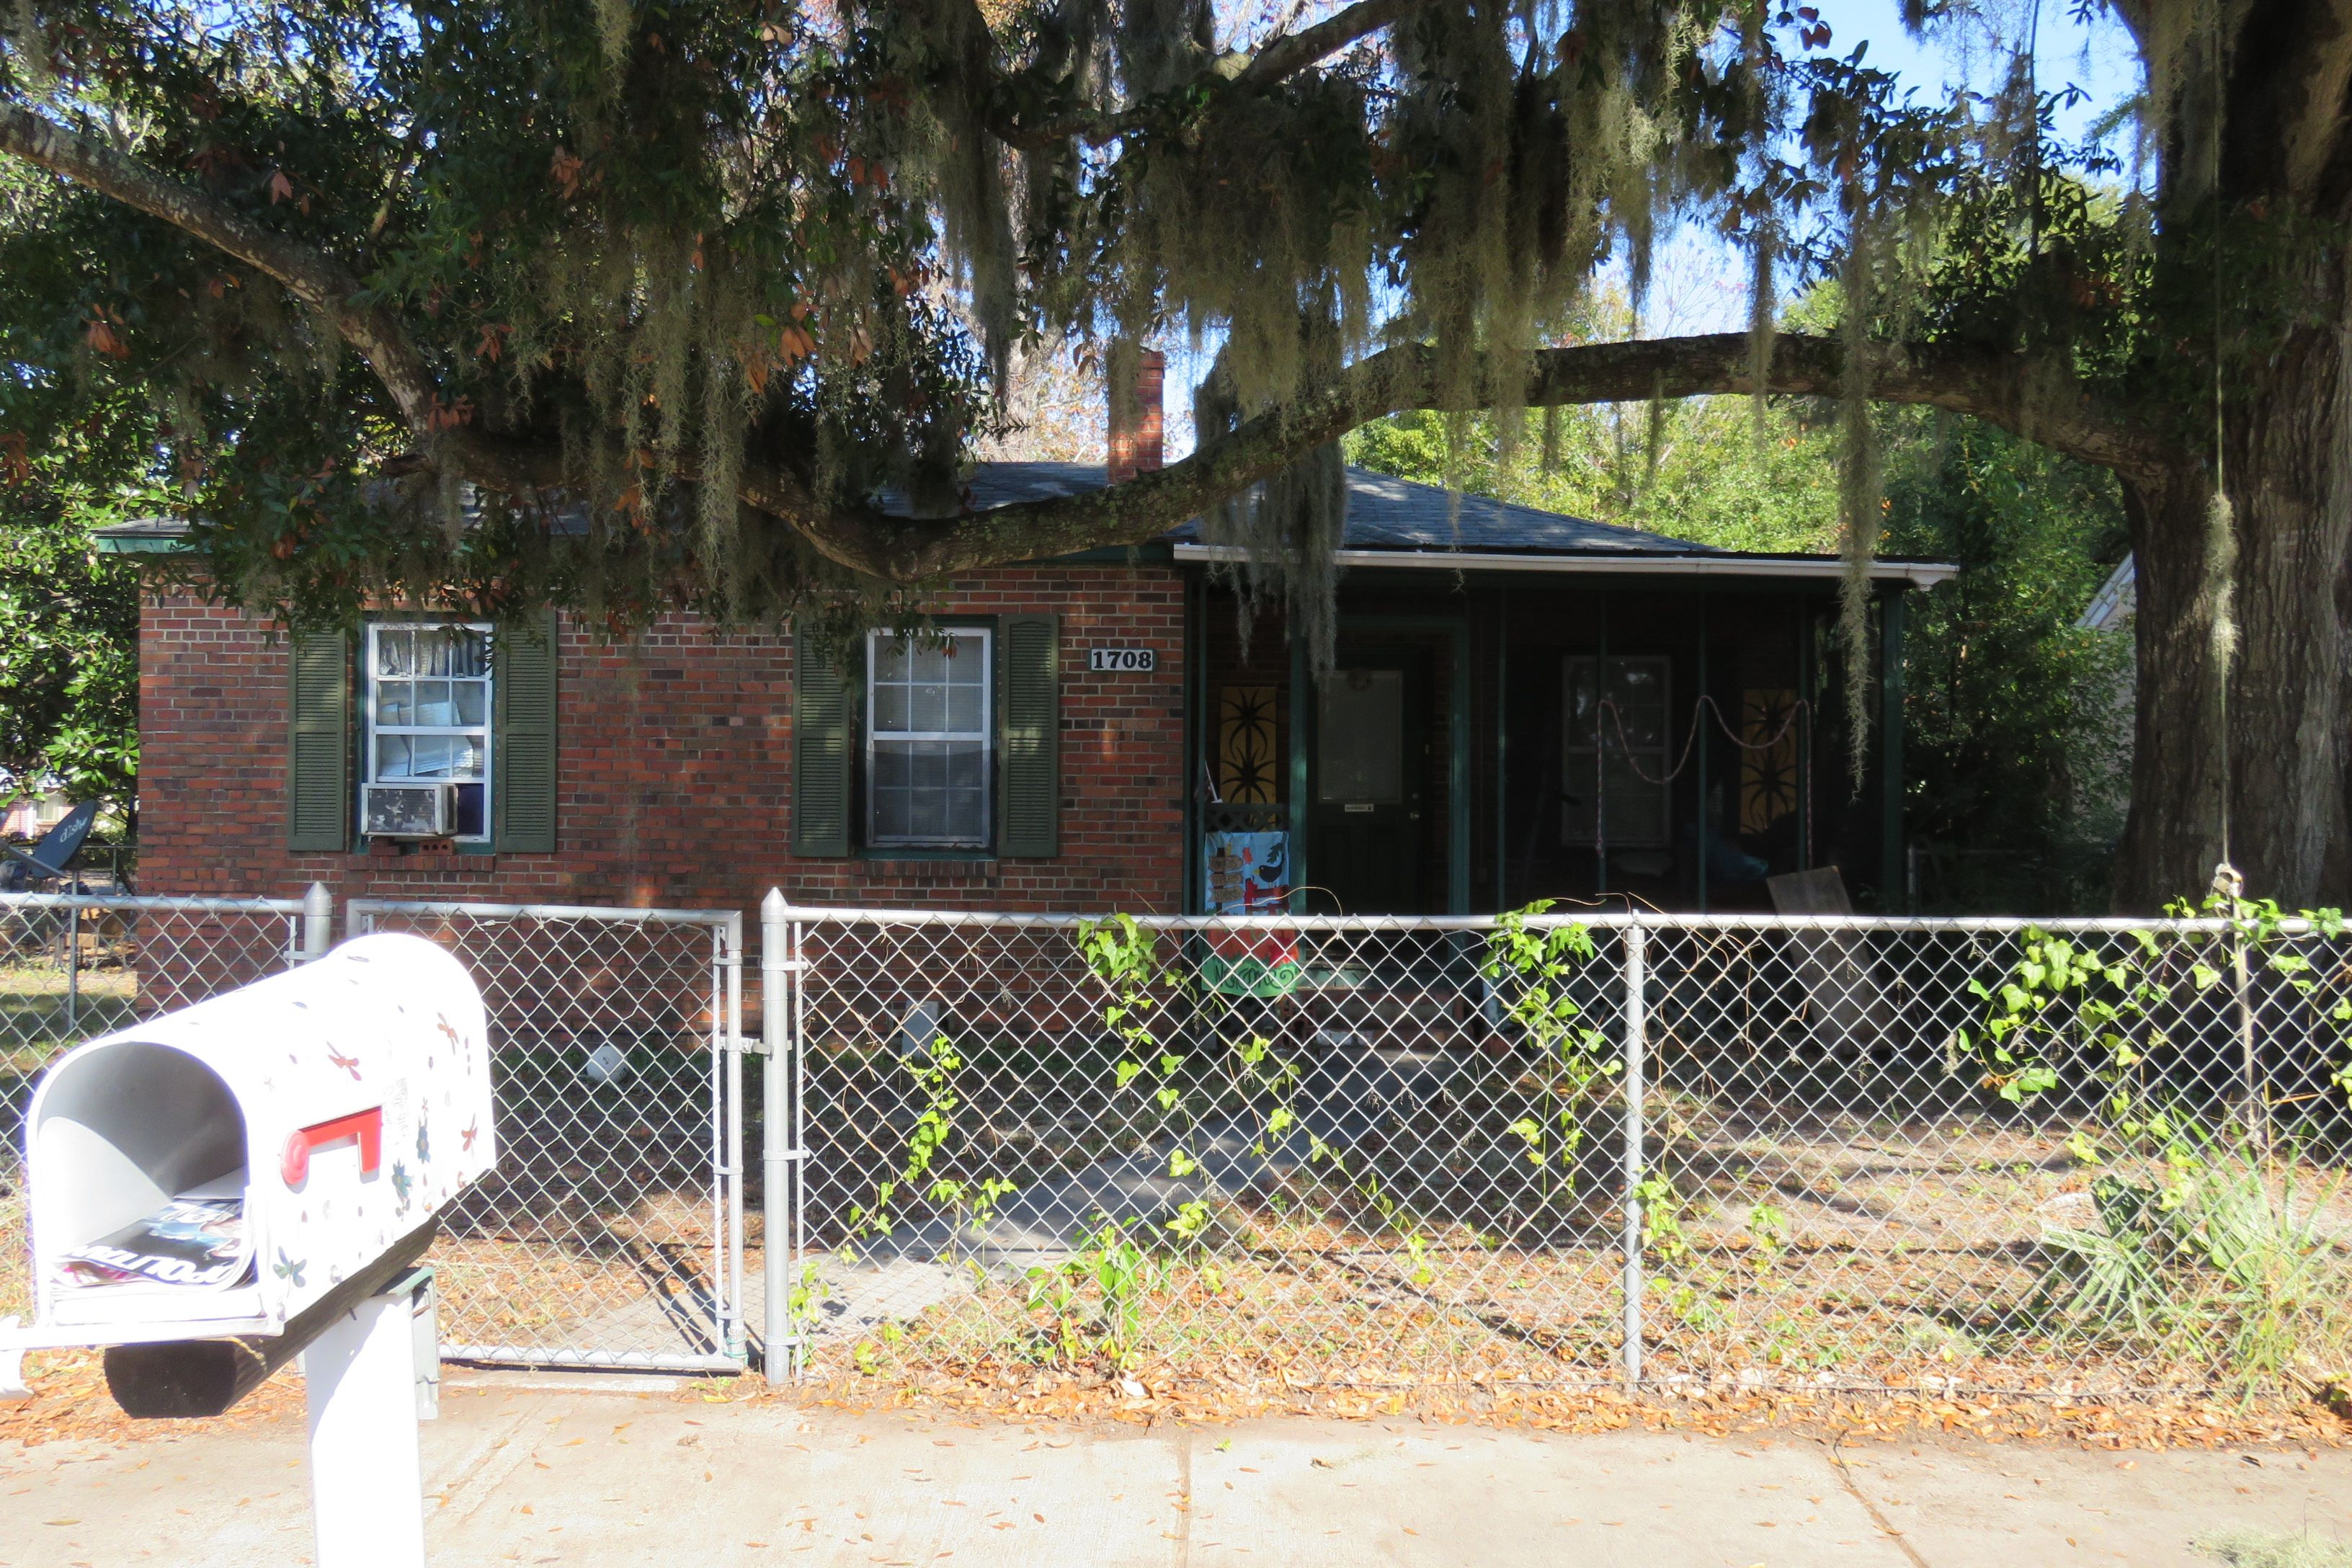 32401 foreclosures – 1708 W 11th St, Panama City, FL 32401